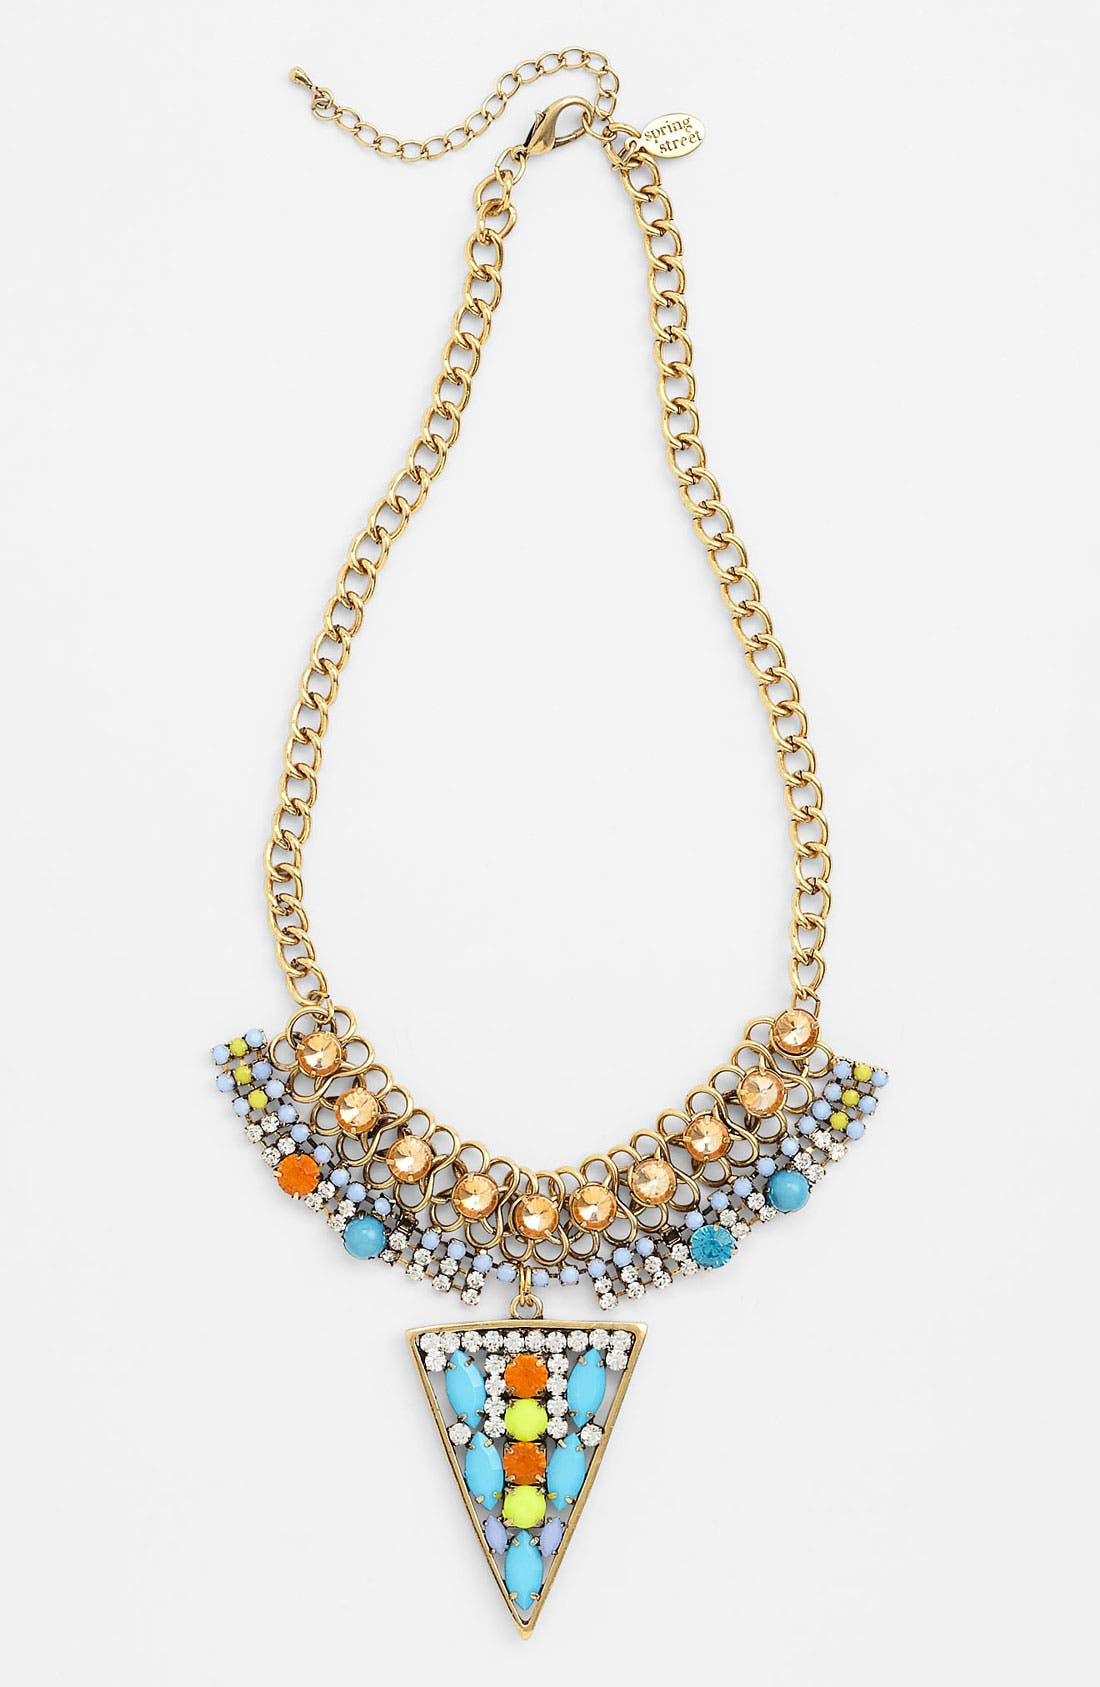 Main Image - Spring Street 'Crystal Details' Necklace (Nordstrom Exclusive)